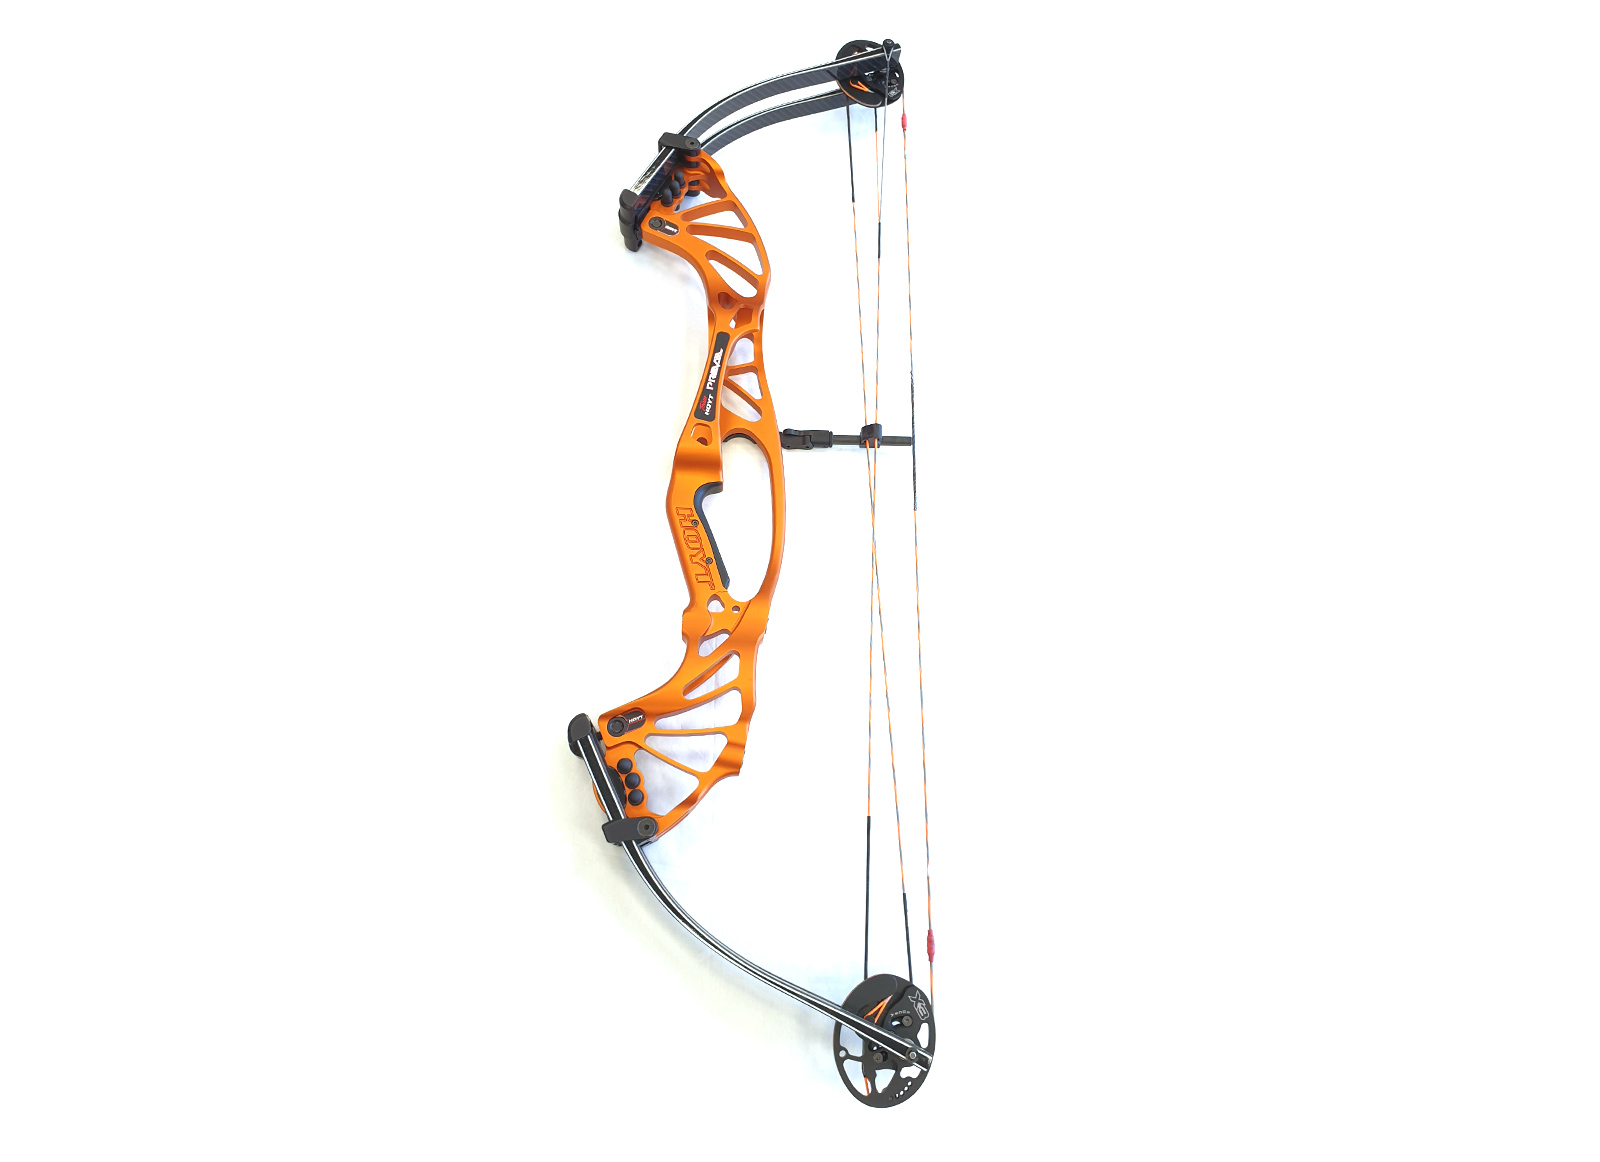 HOYT COMPOUND USATO PREVAIL 37 X3 RH ORANGE 60#